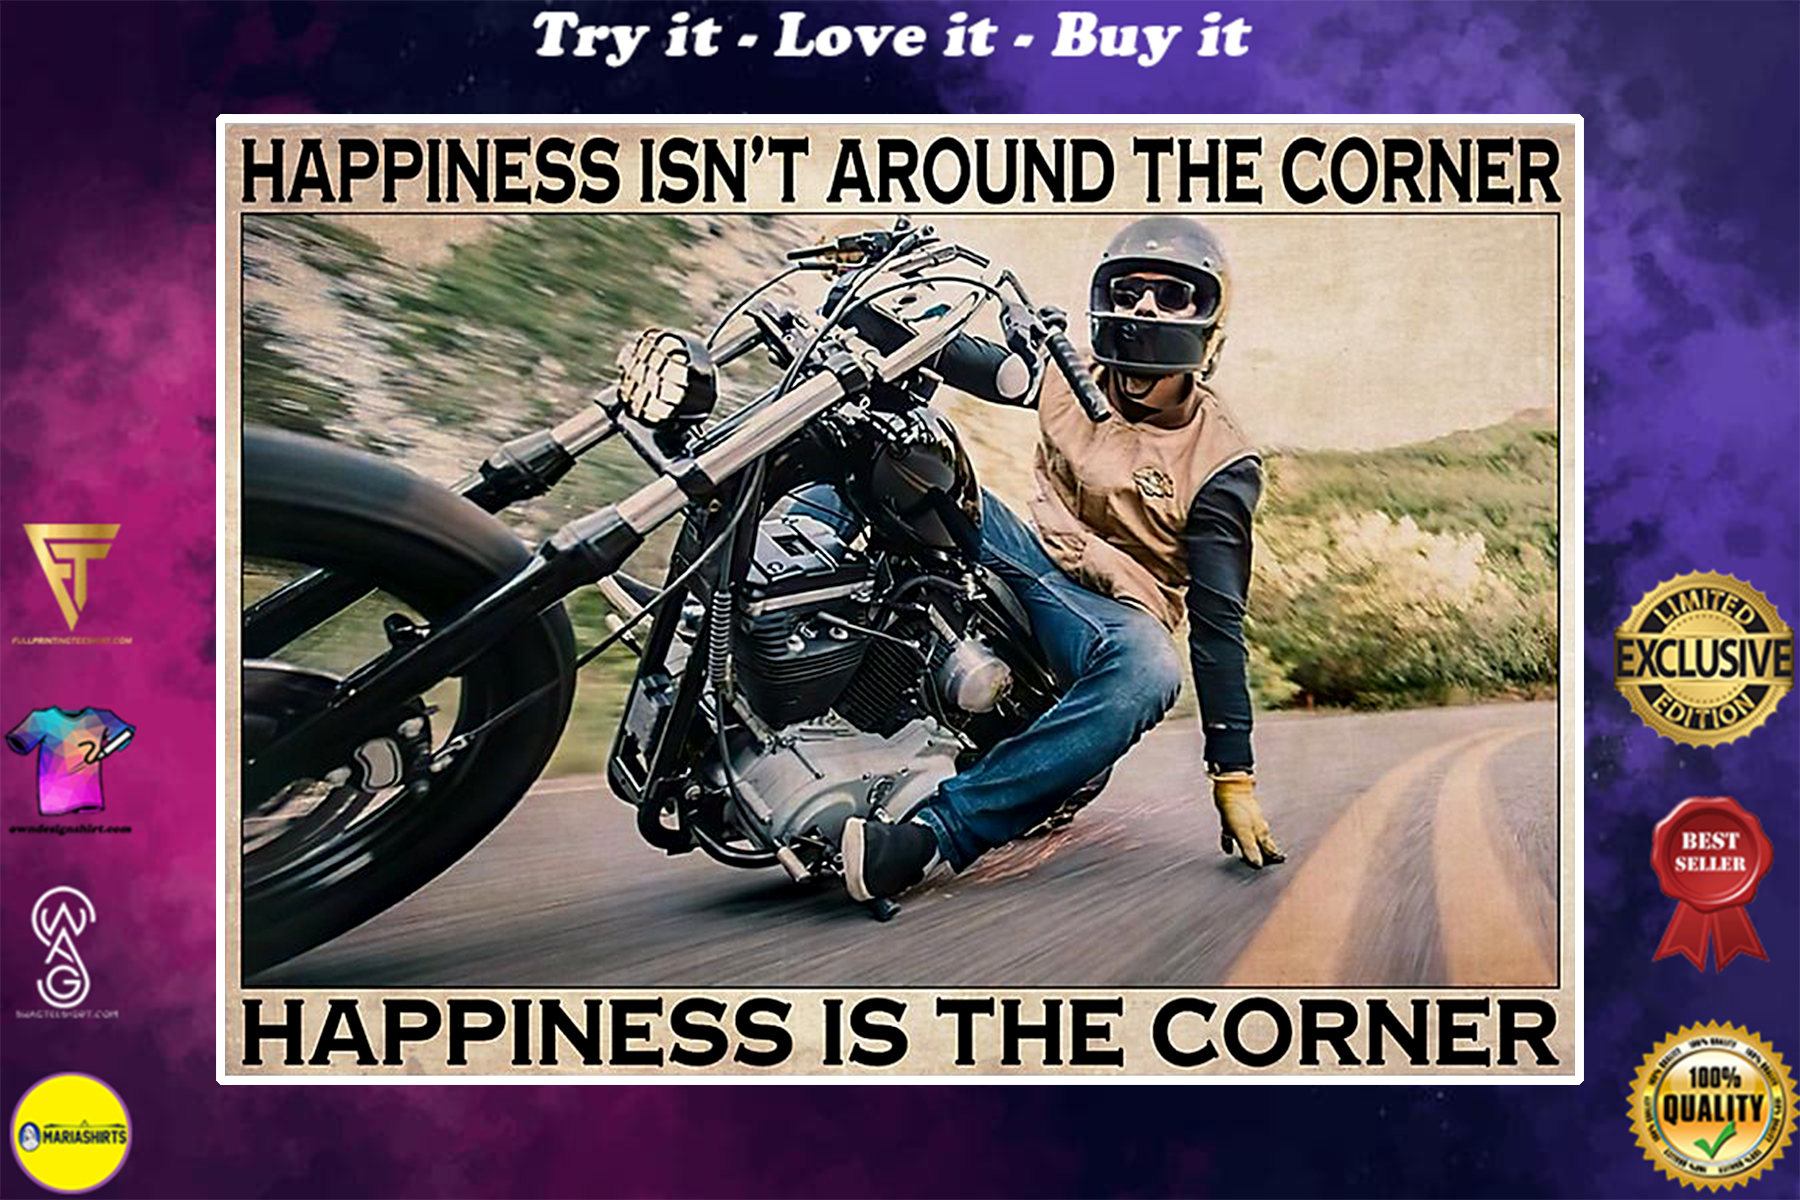 vintage motorcycle happiness isnt around the corner happiness is the corner poster